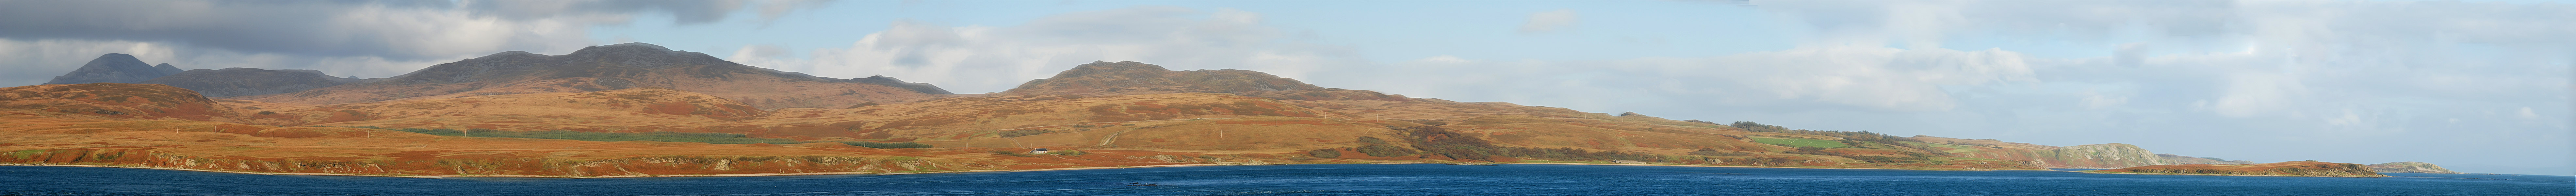 Jura east Panorama Image